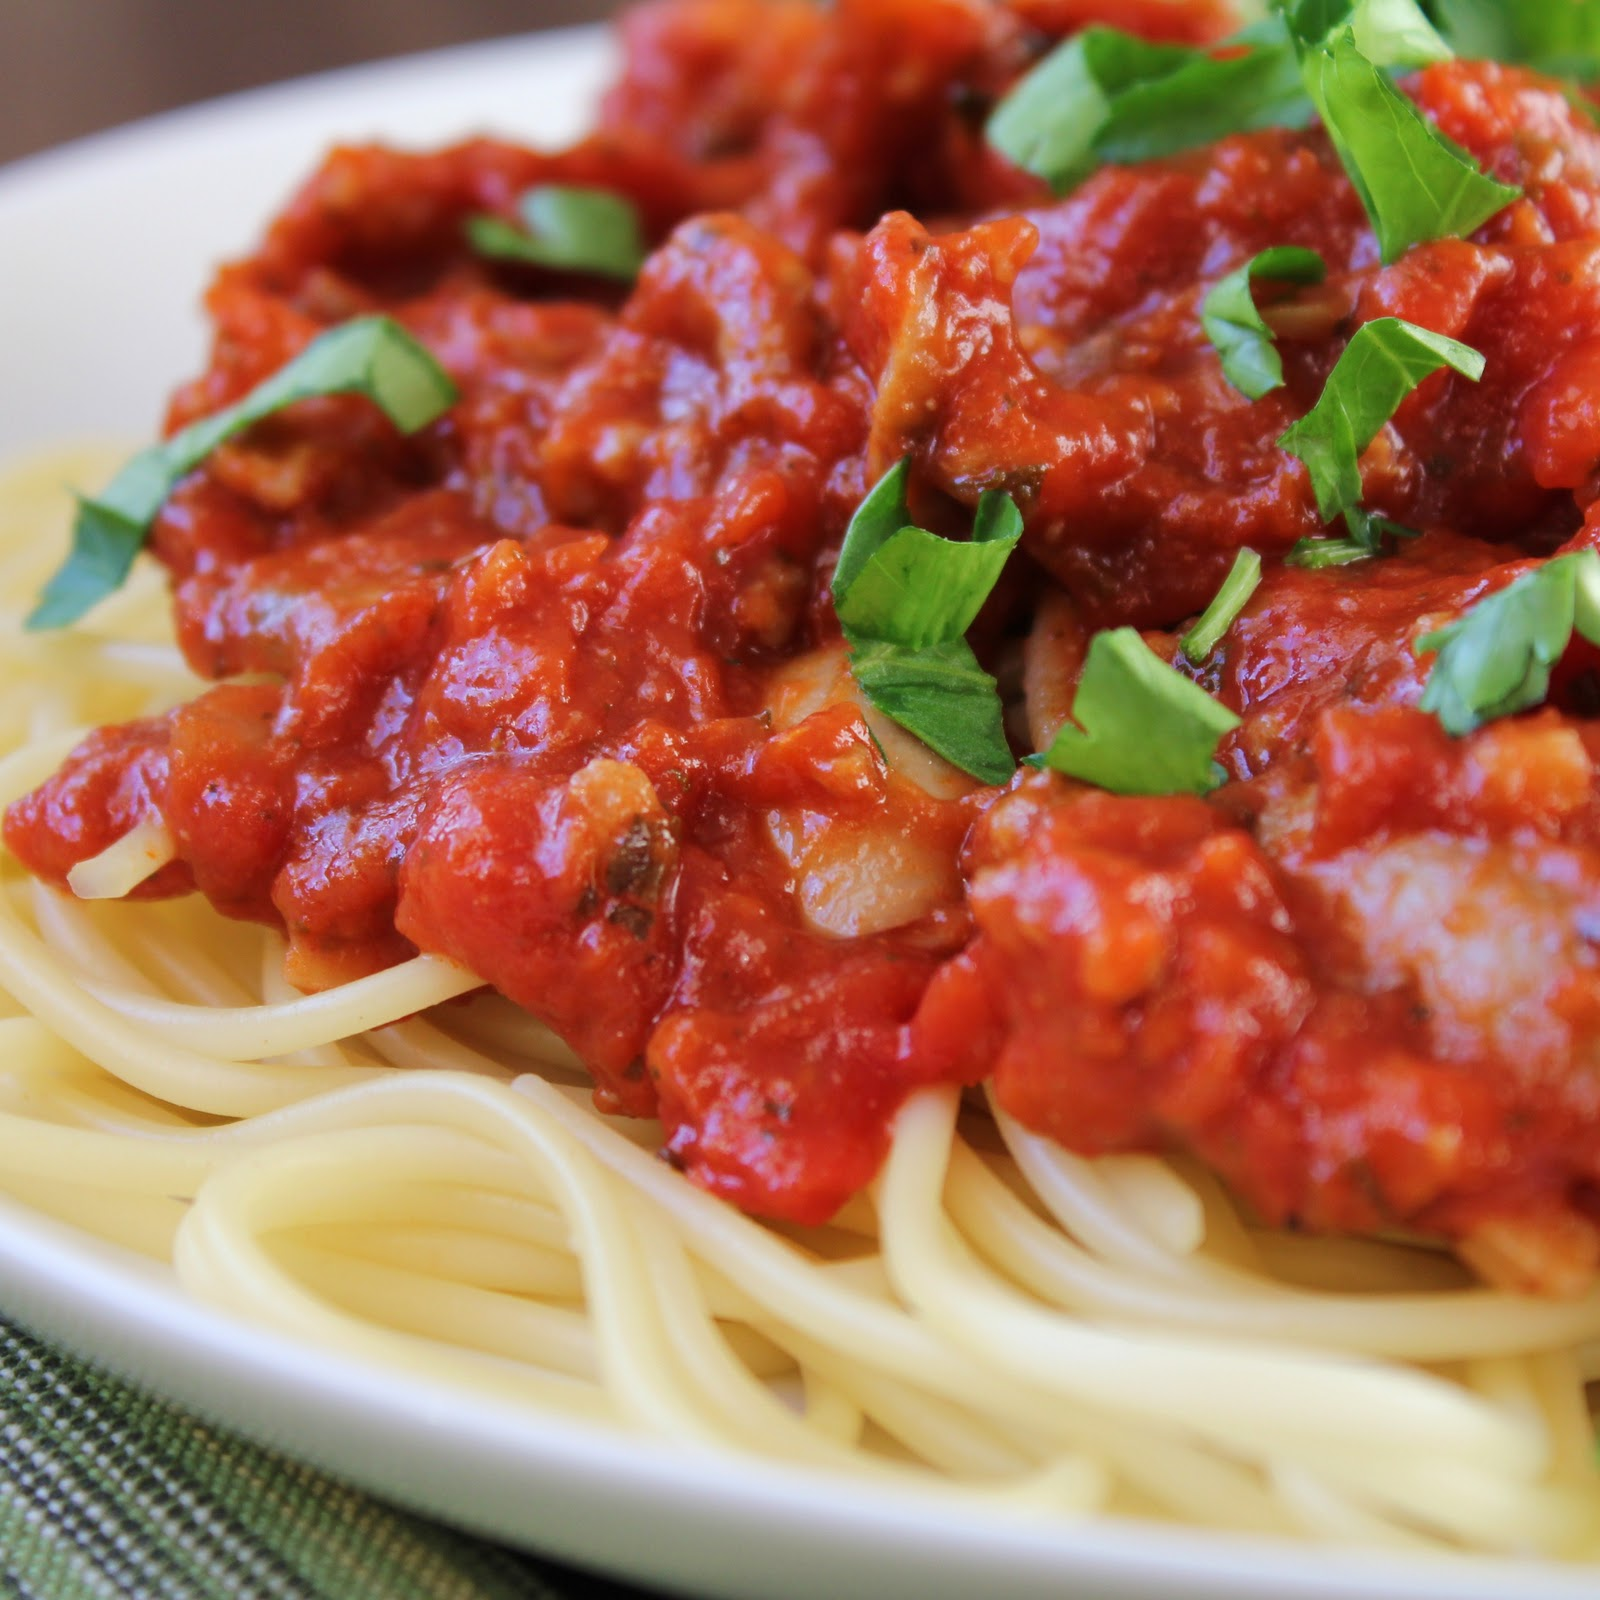 Delicious as it Looks: New Year's Spaghetti Dinner